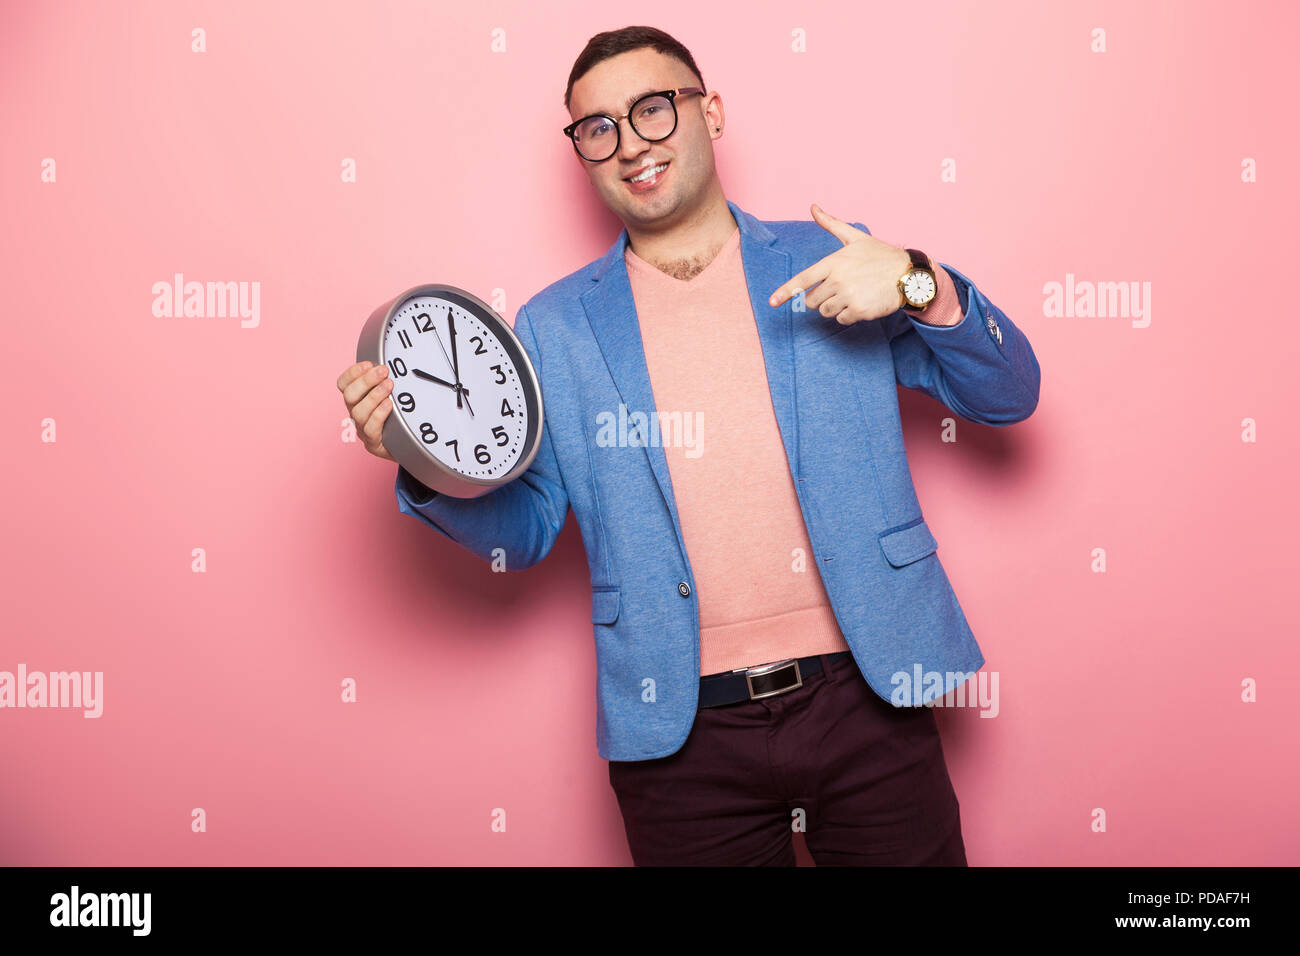 Handsome man in bright jacket with clocks - Stock Image